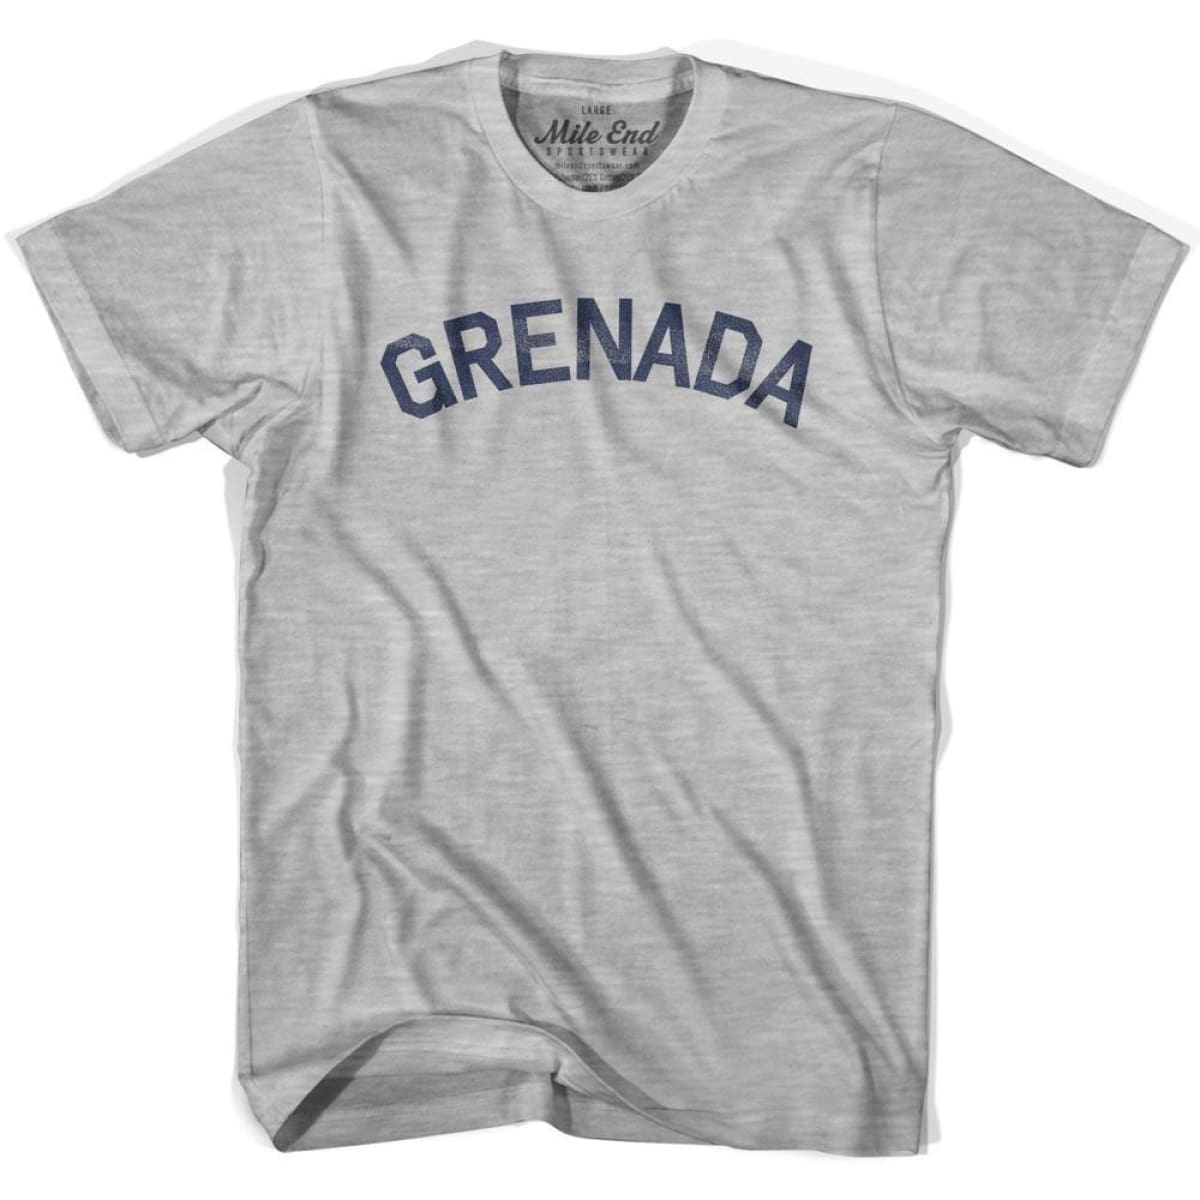 Grenada City Vintage T-shirt - Grey Heather / Youth X-Small - Mile End City